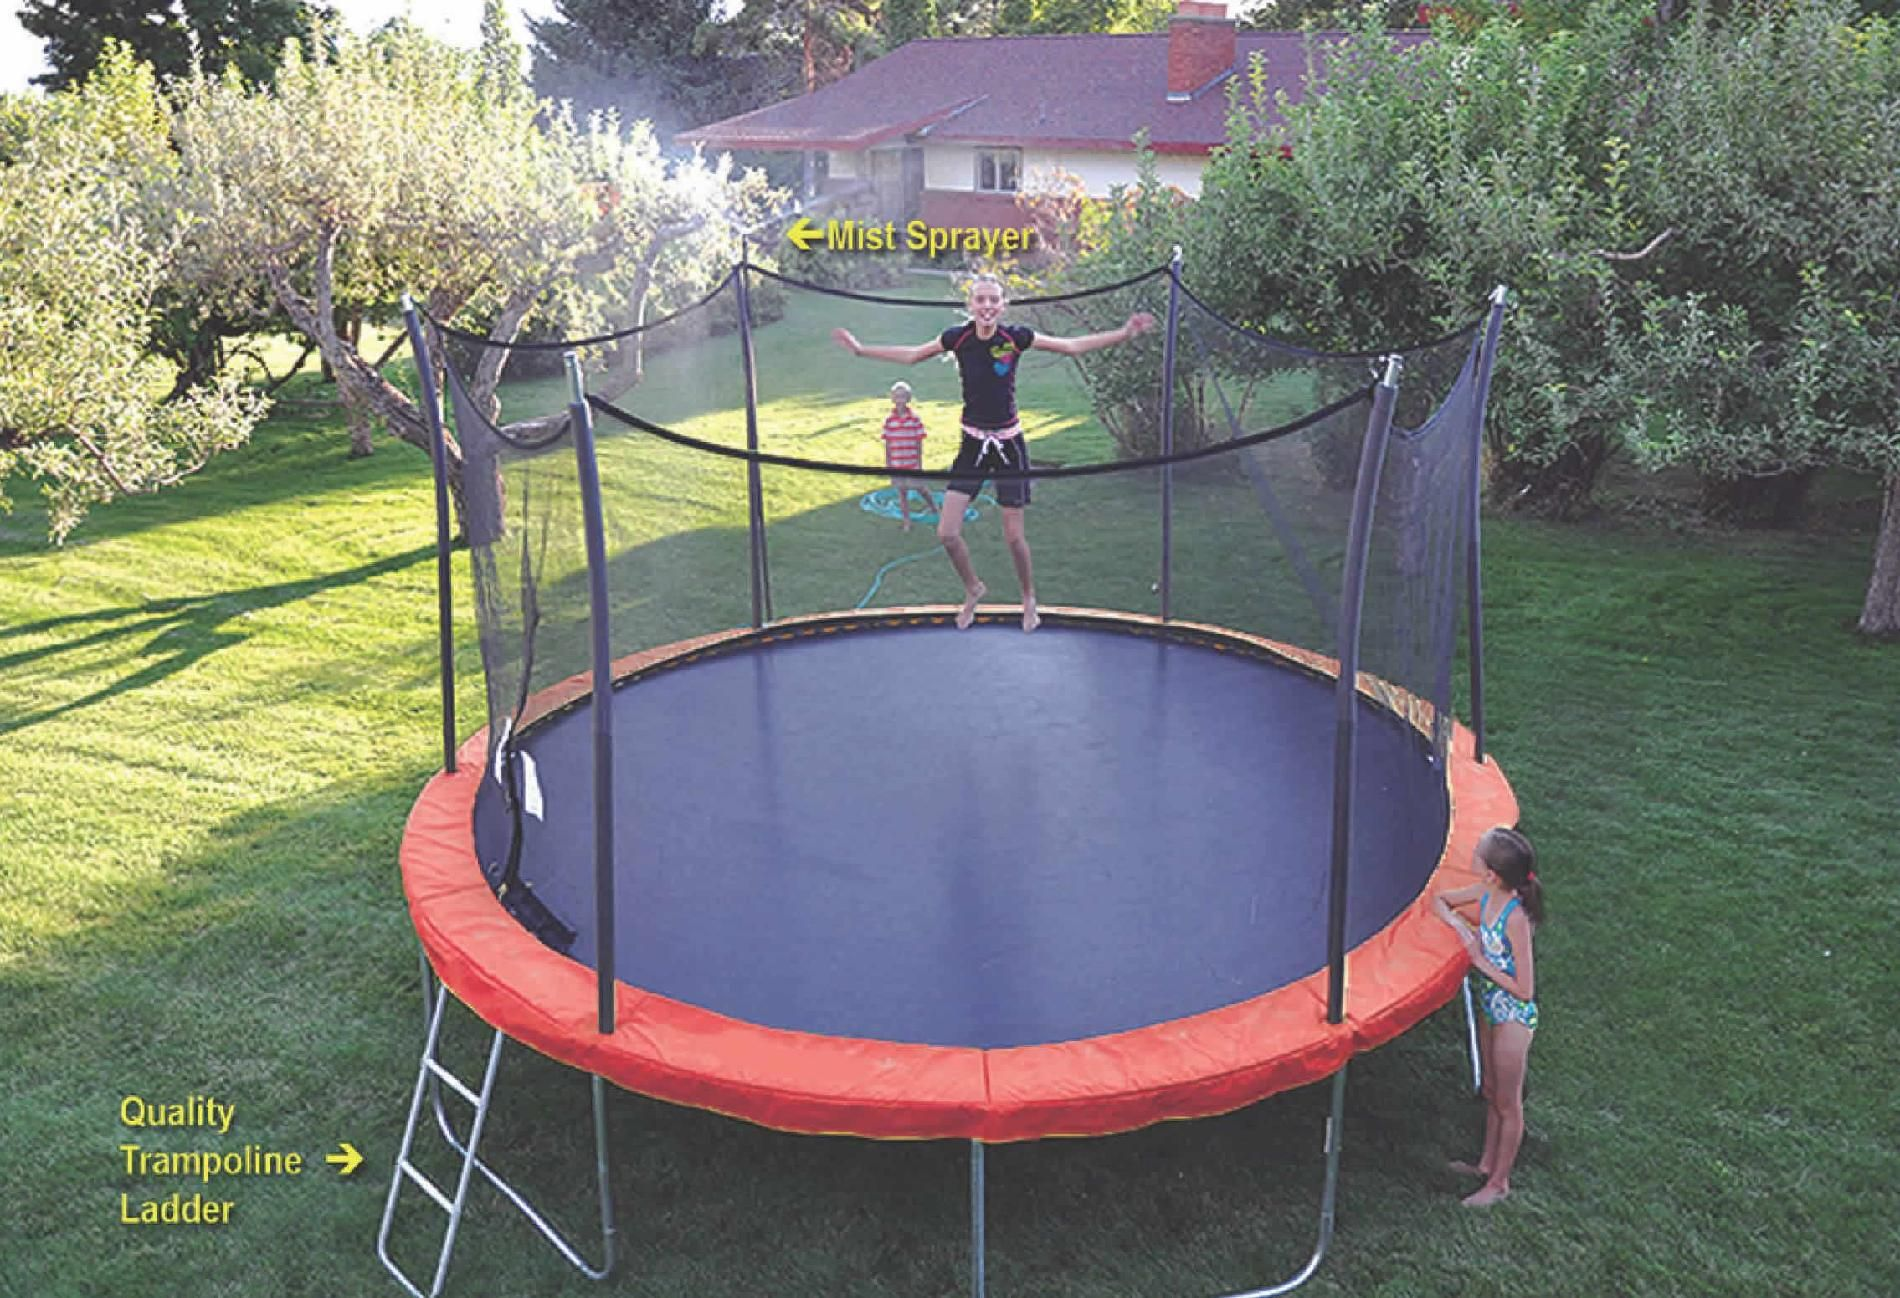 Trampolines for Sale | Kids Swing Sets - Vuly Play US